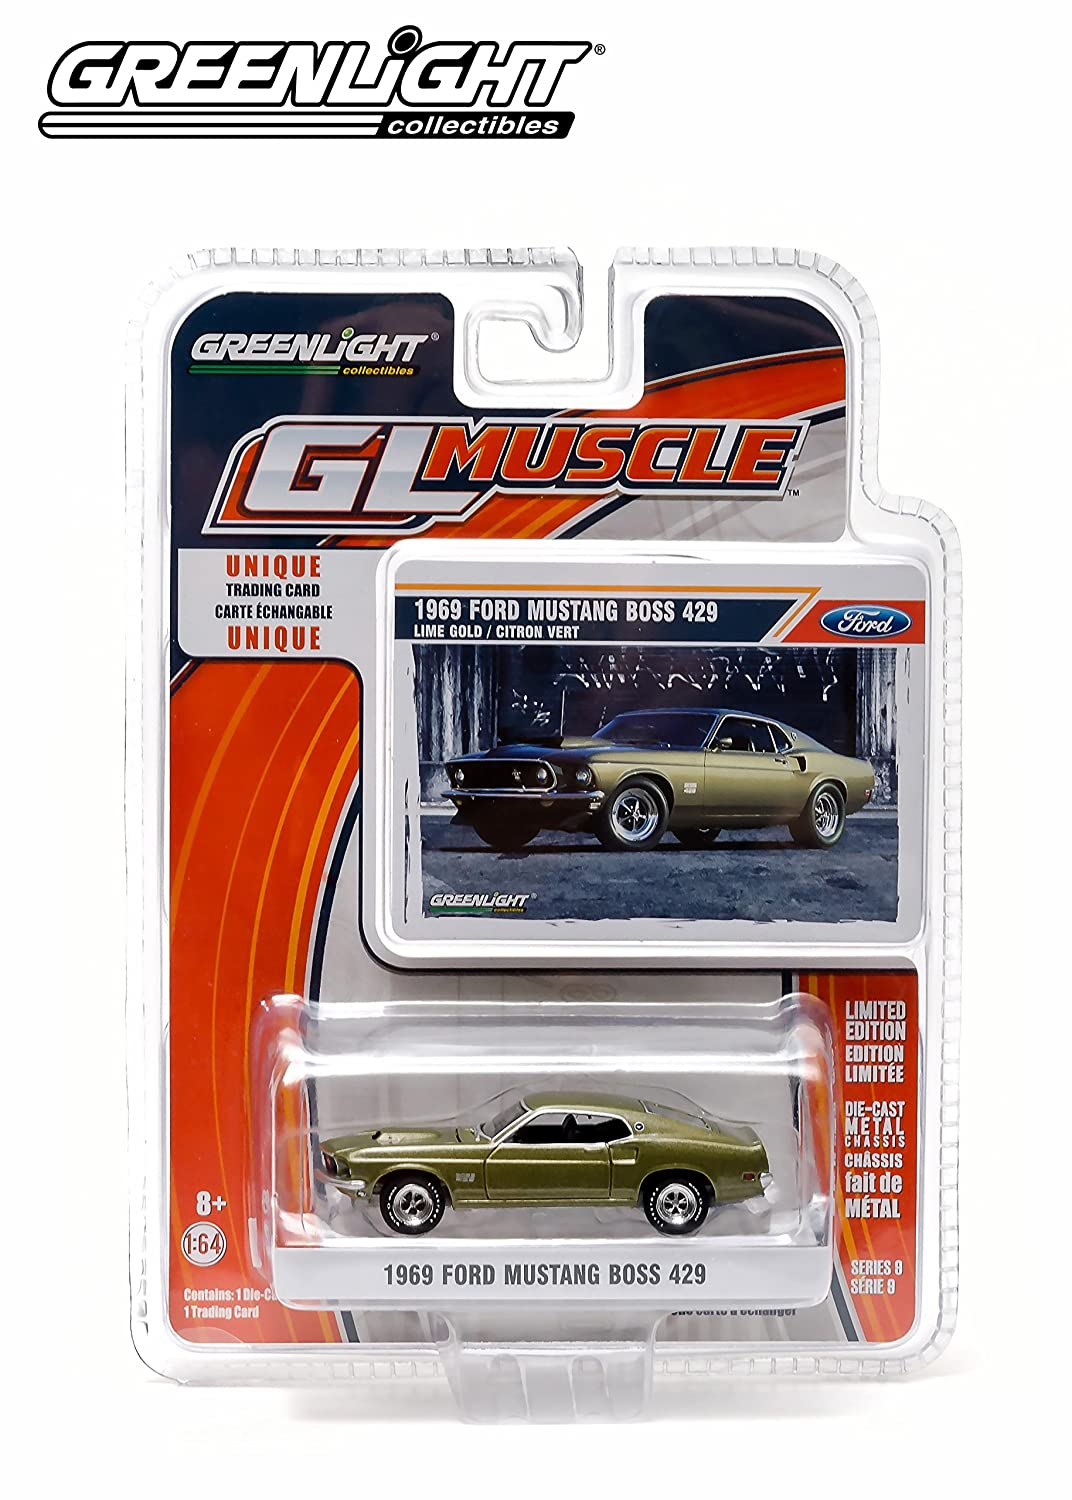 Greenlight GL Muscle Series 9 - 1969 Ford Mustang Boss 429 by GL Muscle